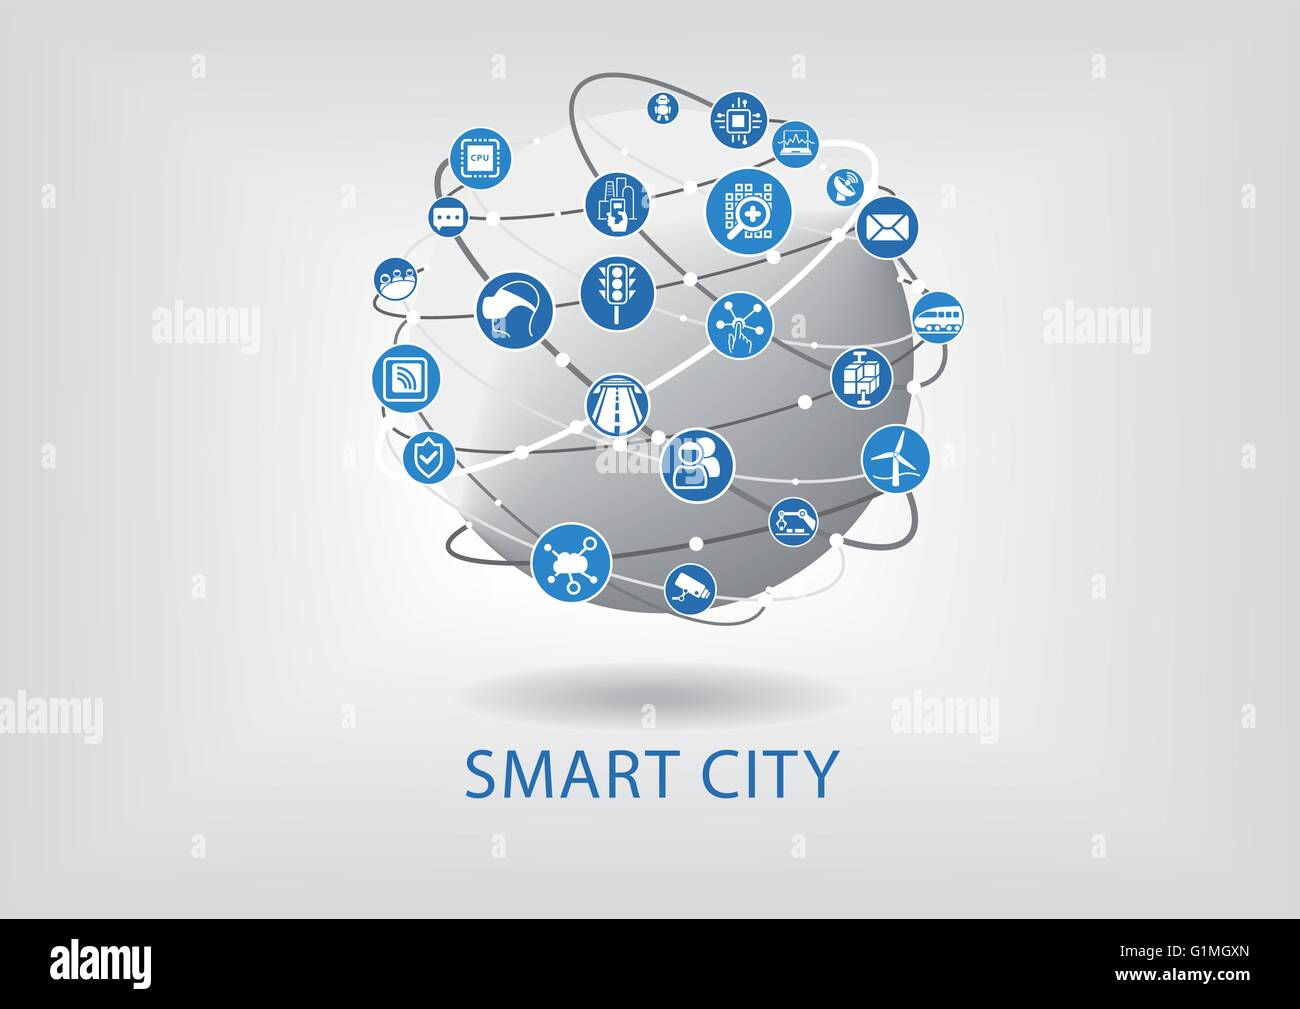 Smart city infographic - Stock Image